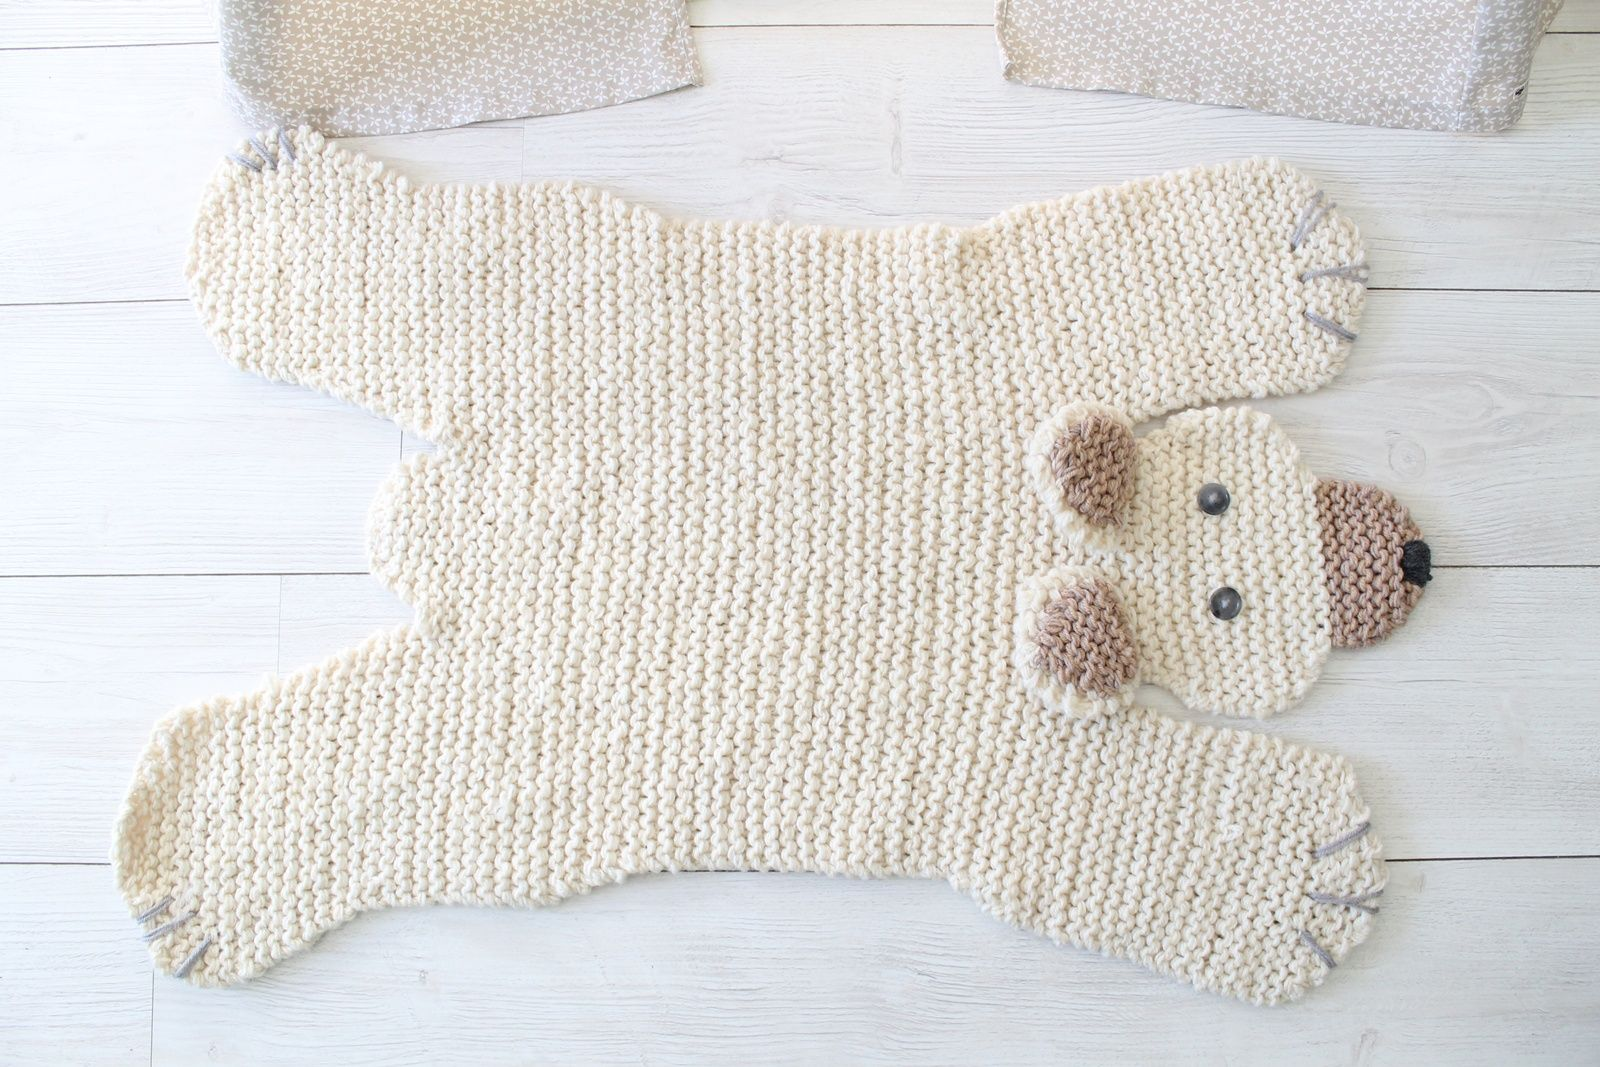 Knit Bear Pattern : bear rug / knitting pattern: https://www.etsy.com/fr ...